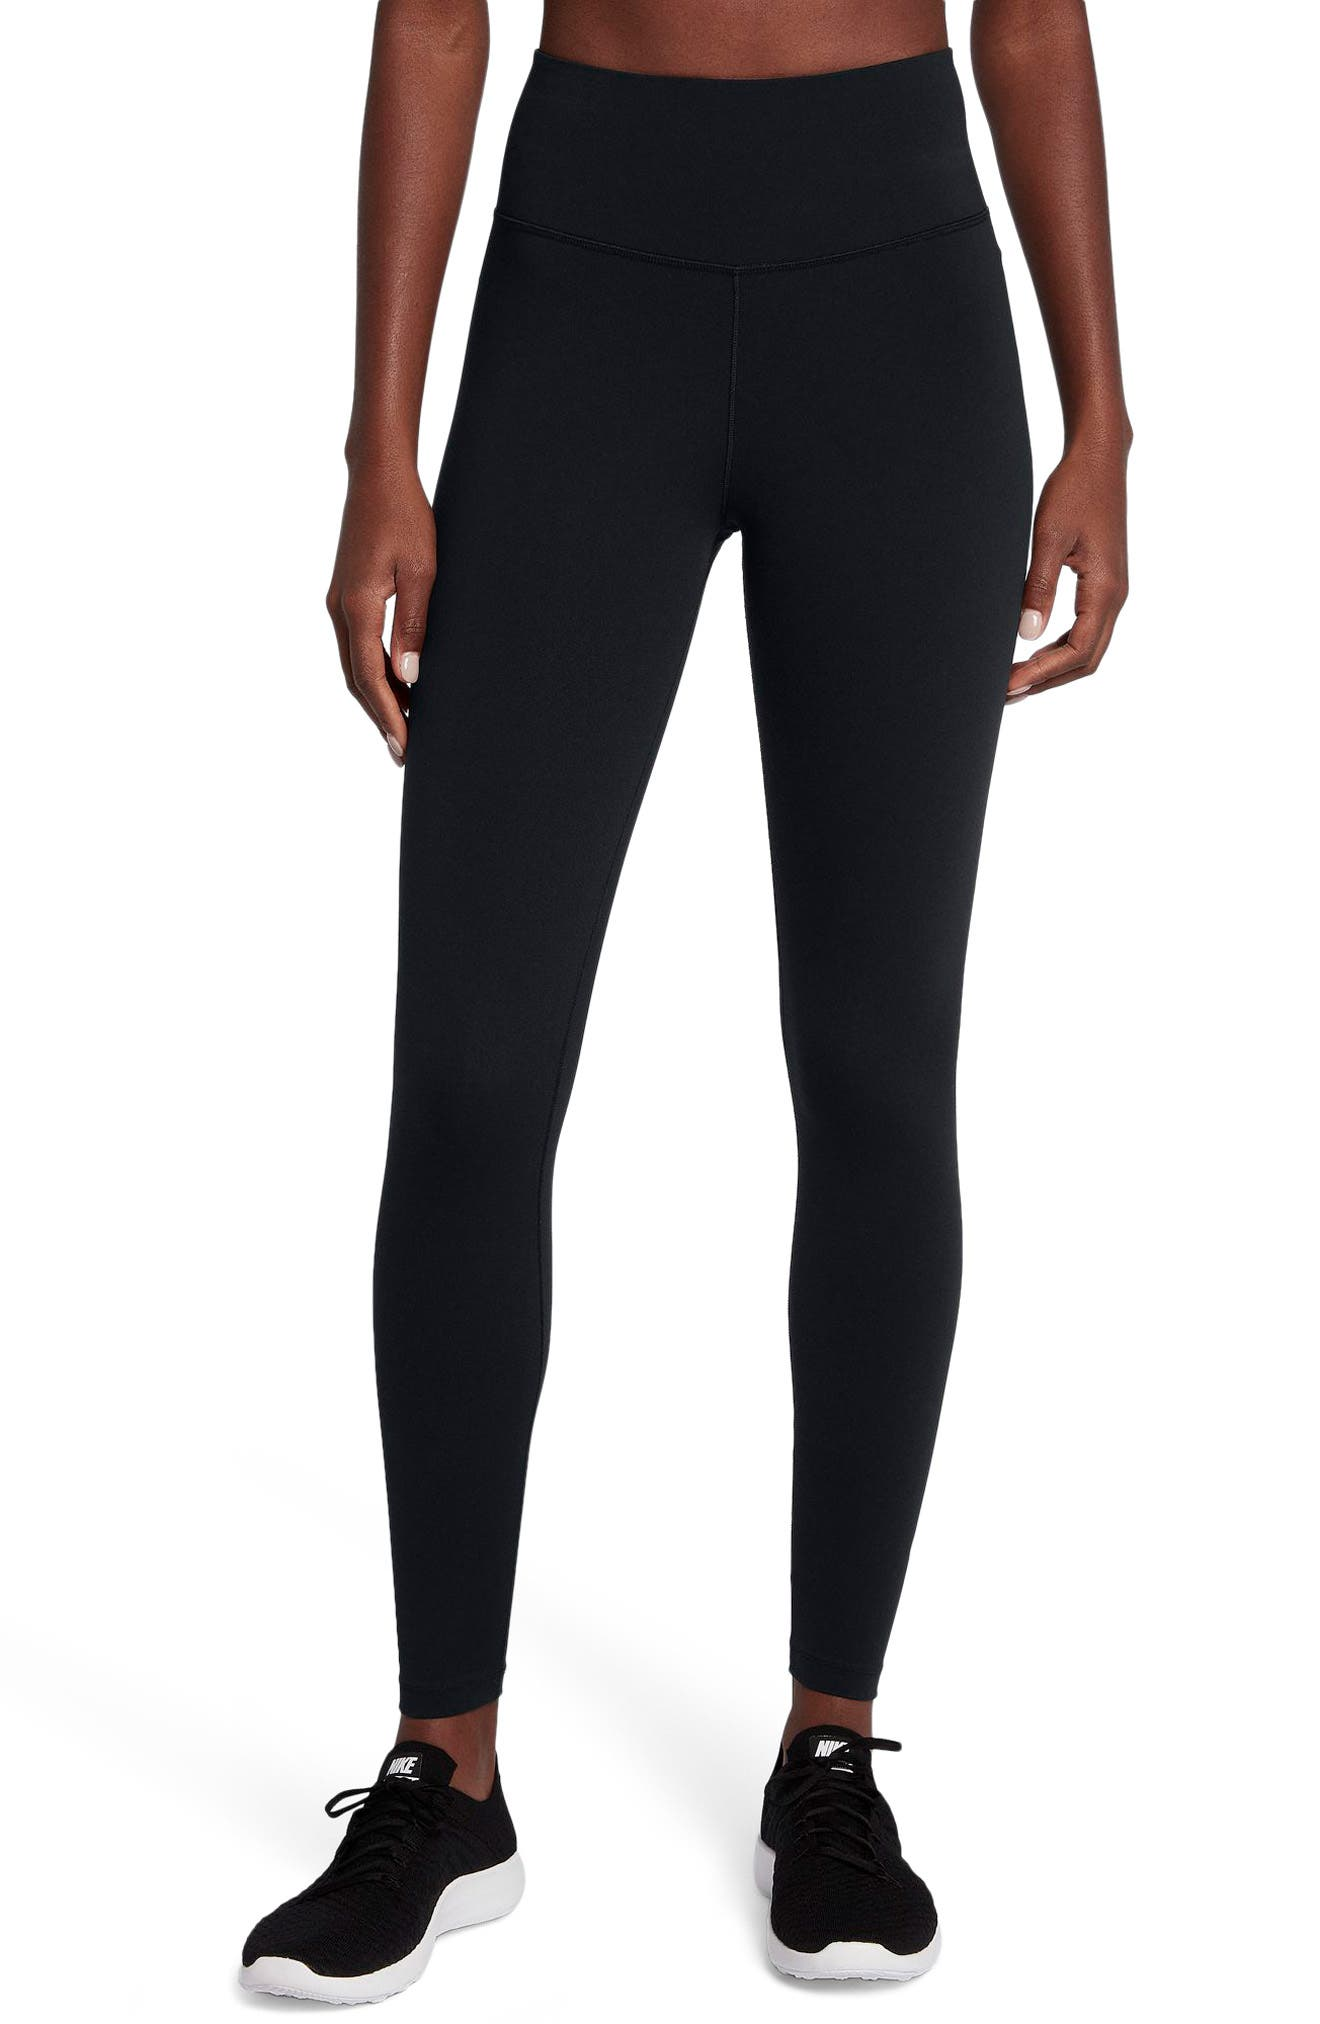 Alternate Image 1 Selected - Nike Sculpt Lux Training Tights